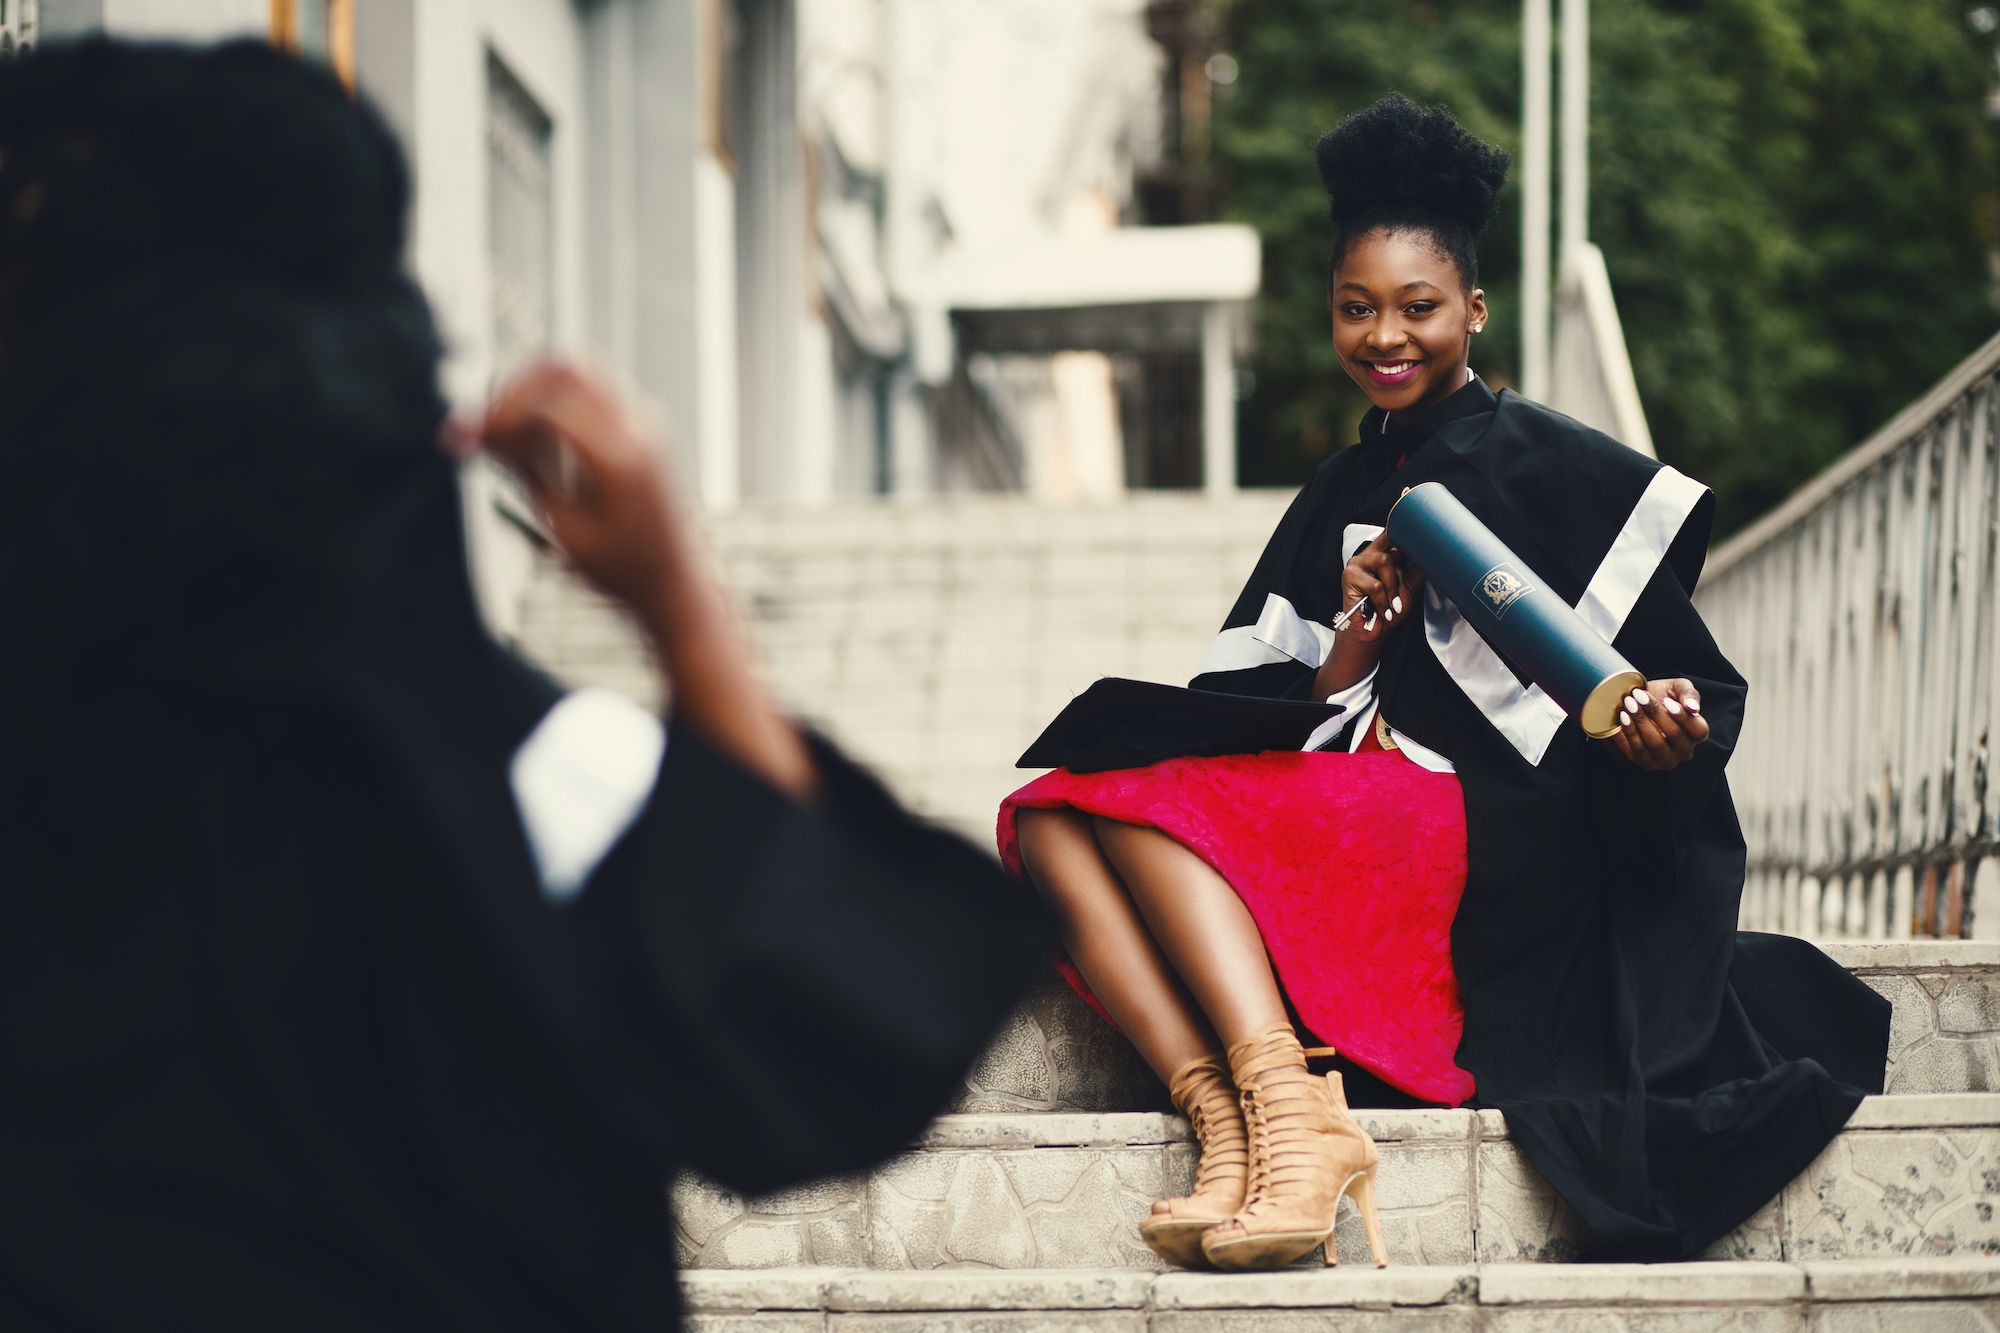 An African lady wearing her graduation gown